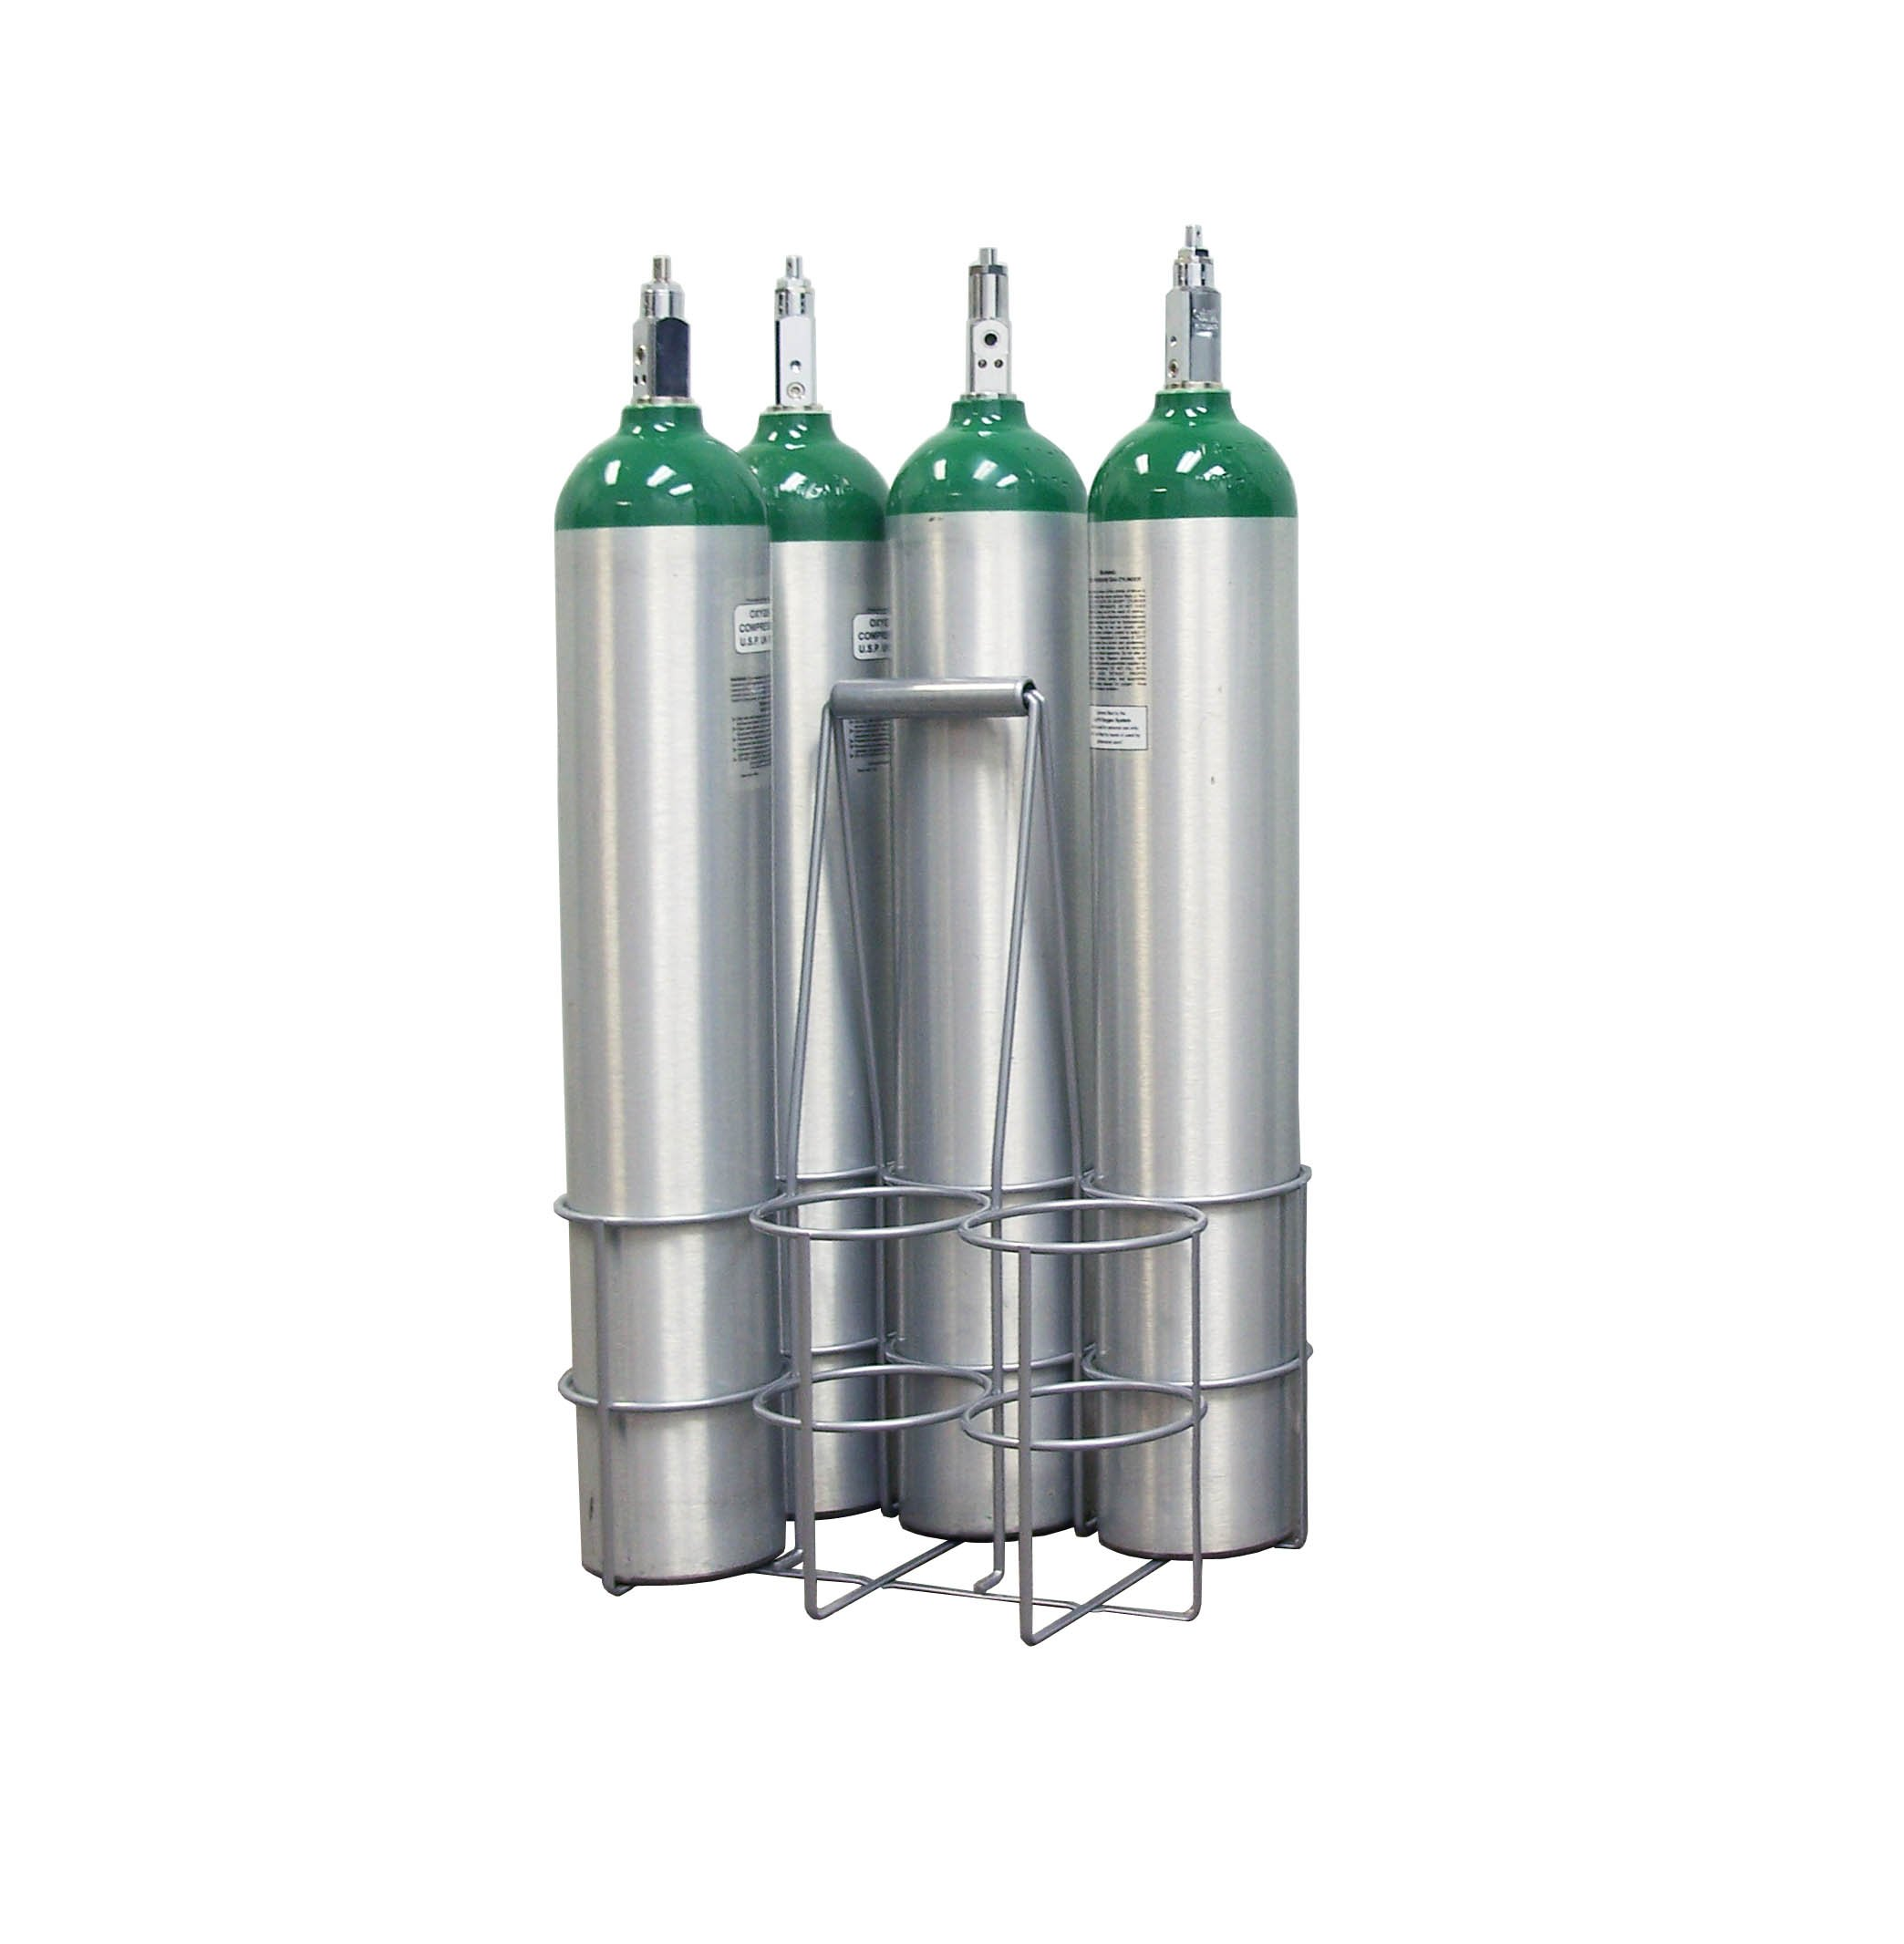 Long Handle Milkman Style Metal Carrier for D/E/M9 Oxygen Cylinders, holds 6 cylinders